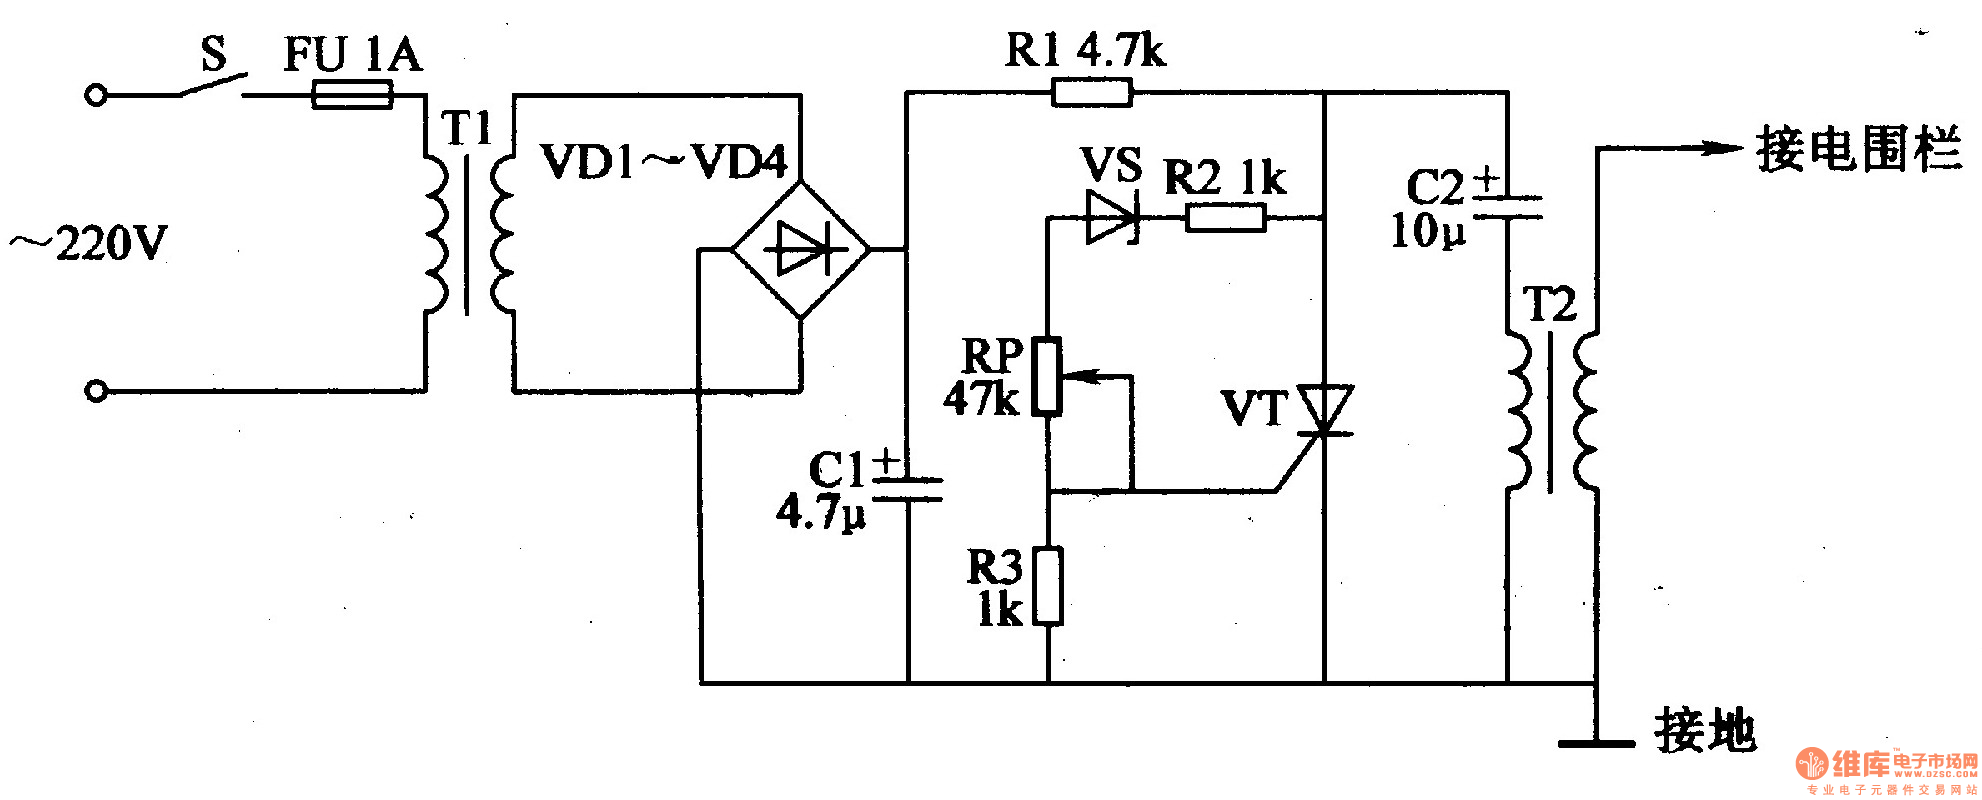 Fence Charger Schematic on wiring diagram for an electric fence